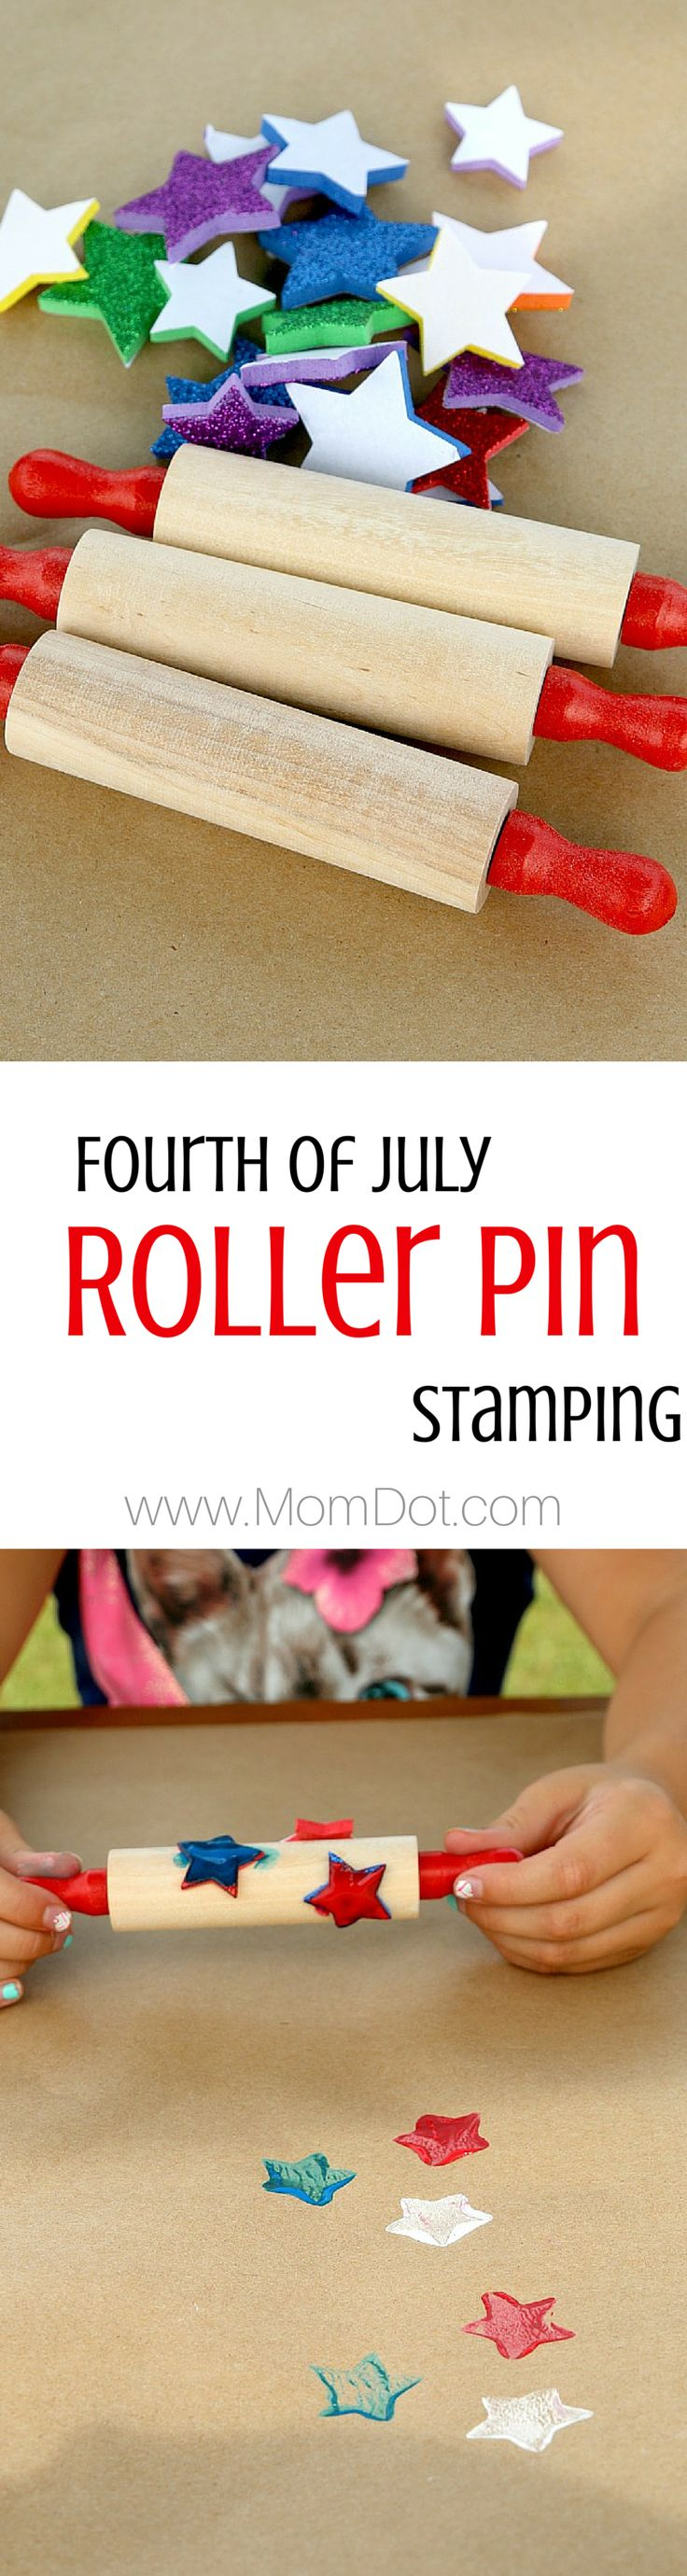 Roller Pin stamping great for July 4th picnic table decor, so easy for all ages. Just grab some foam shapes and easily stick on roller pins and roll. Great to keep kids busy at the table, or even create custom wallpaper or wrapping paper. Come see our results for this roller pin painting project for kids